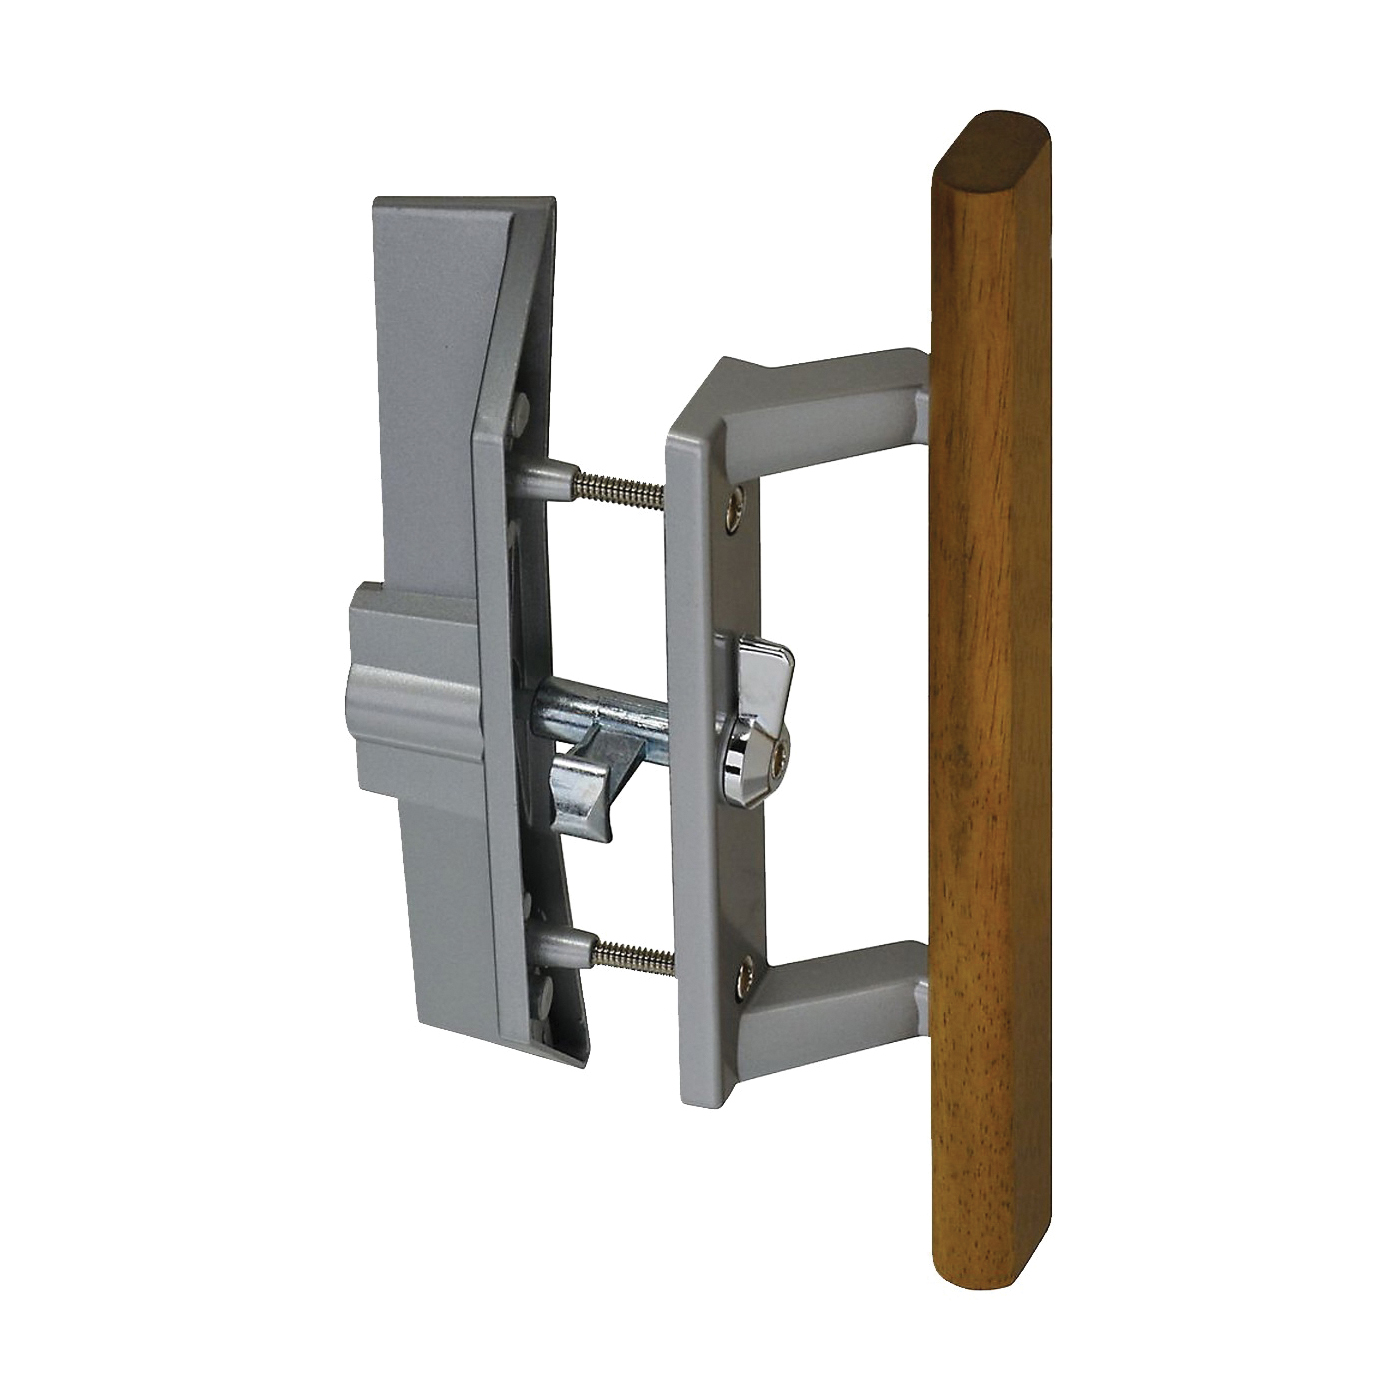 Picture of National Hardware V1363 Series N349-209 Handle/Latch Set, Keyed Key, Zinc, Aluminum